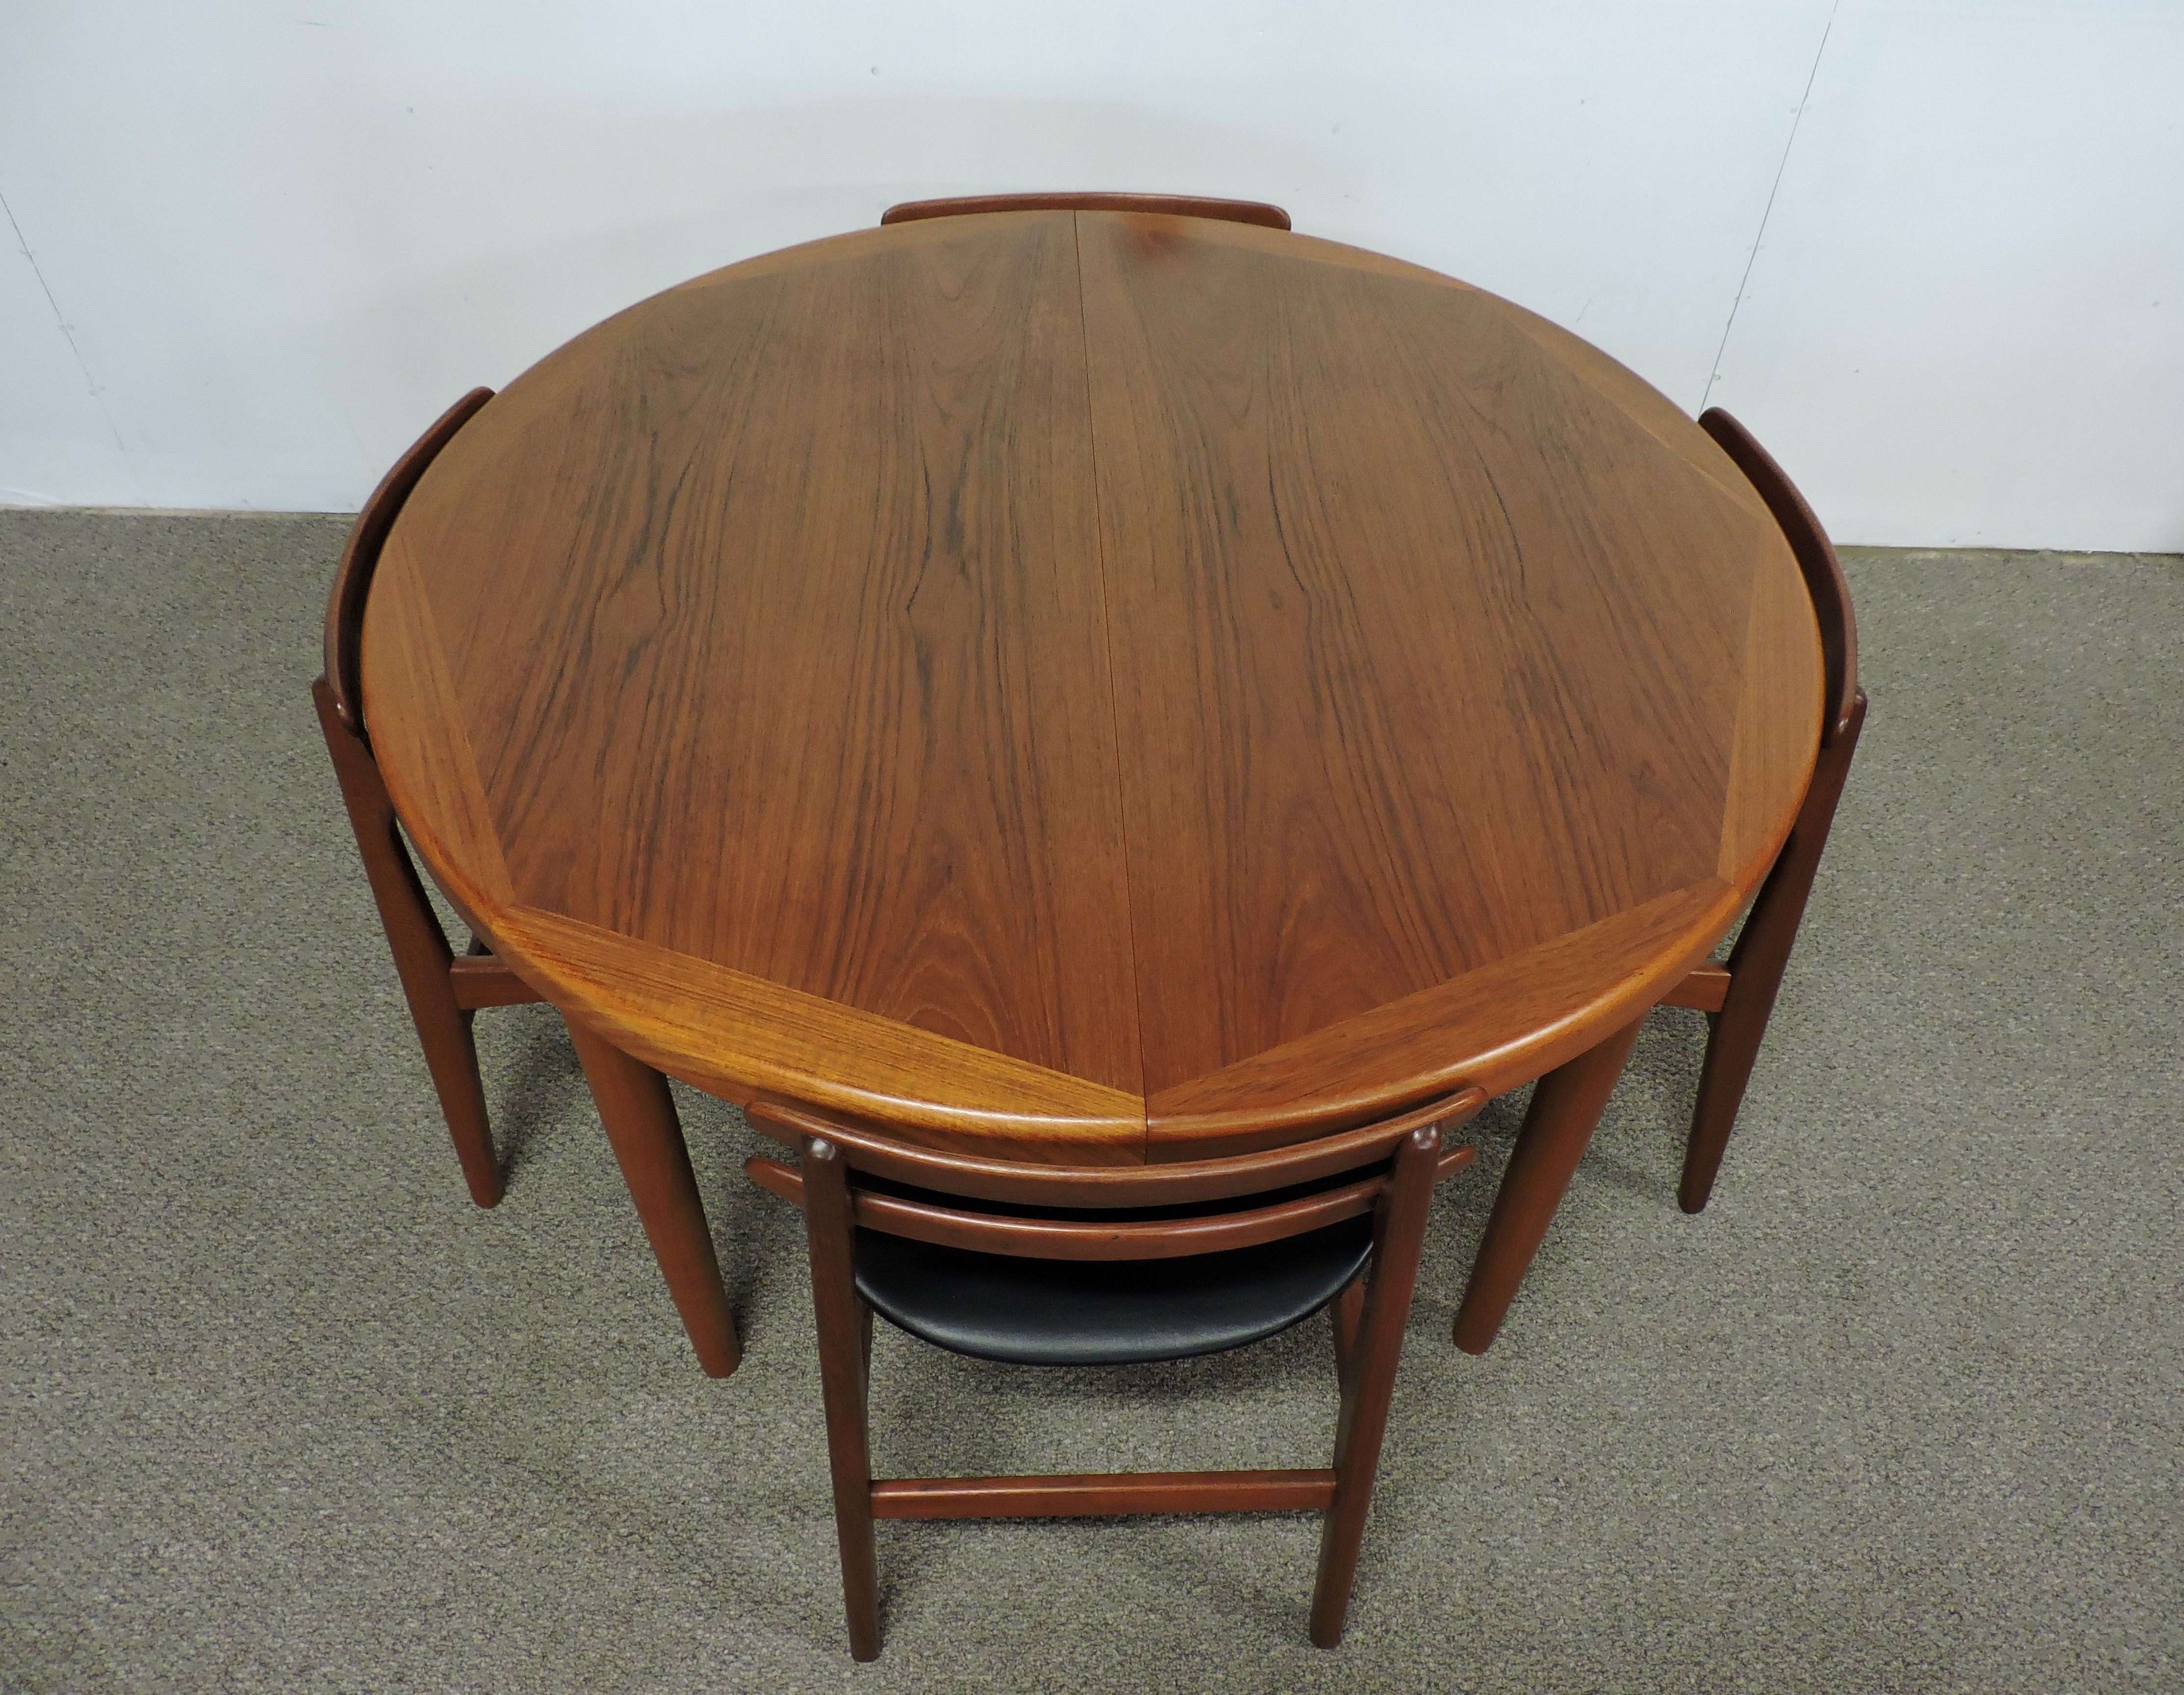 Danish Modern Vejle Stole Teak Extendable Dining Table And Four